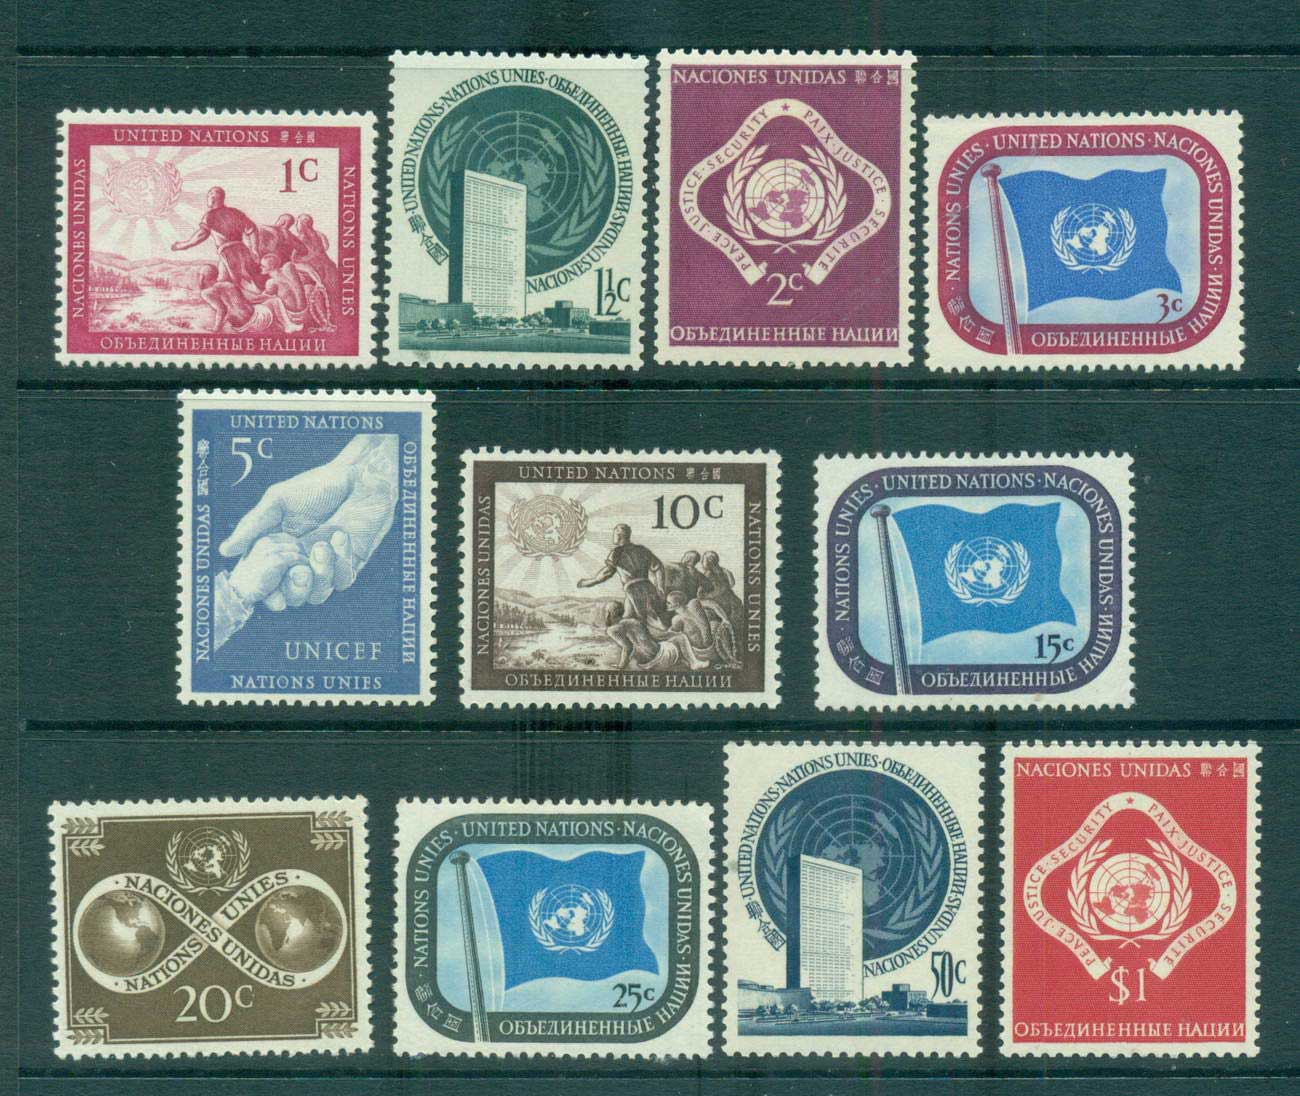 UN New York 1950 Definitives MUH lot65934